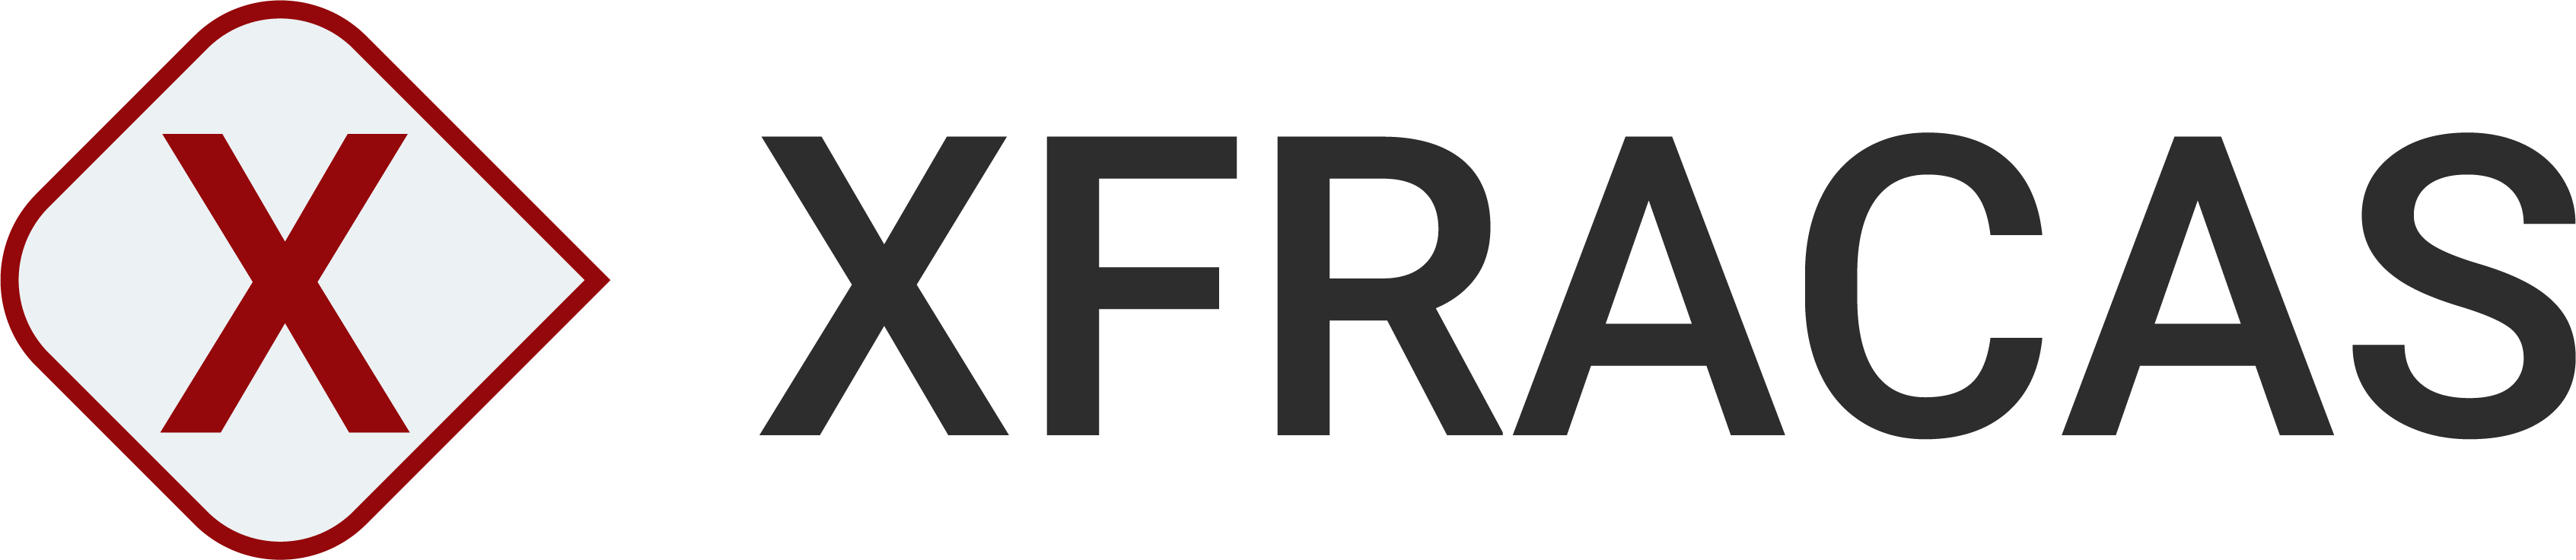 XFRACAS - Web-based failure reporting and problem resolution